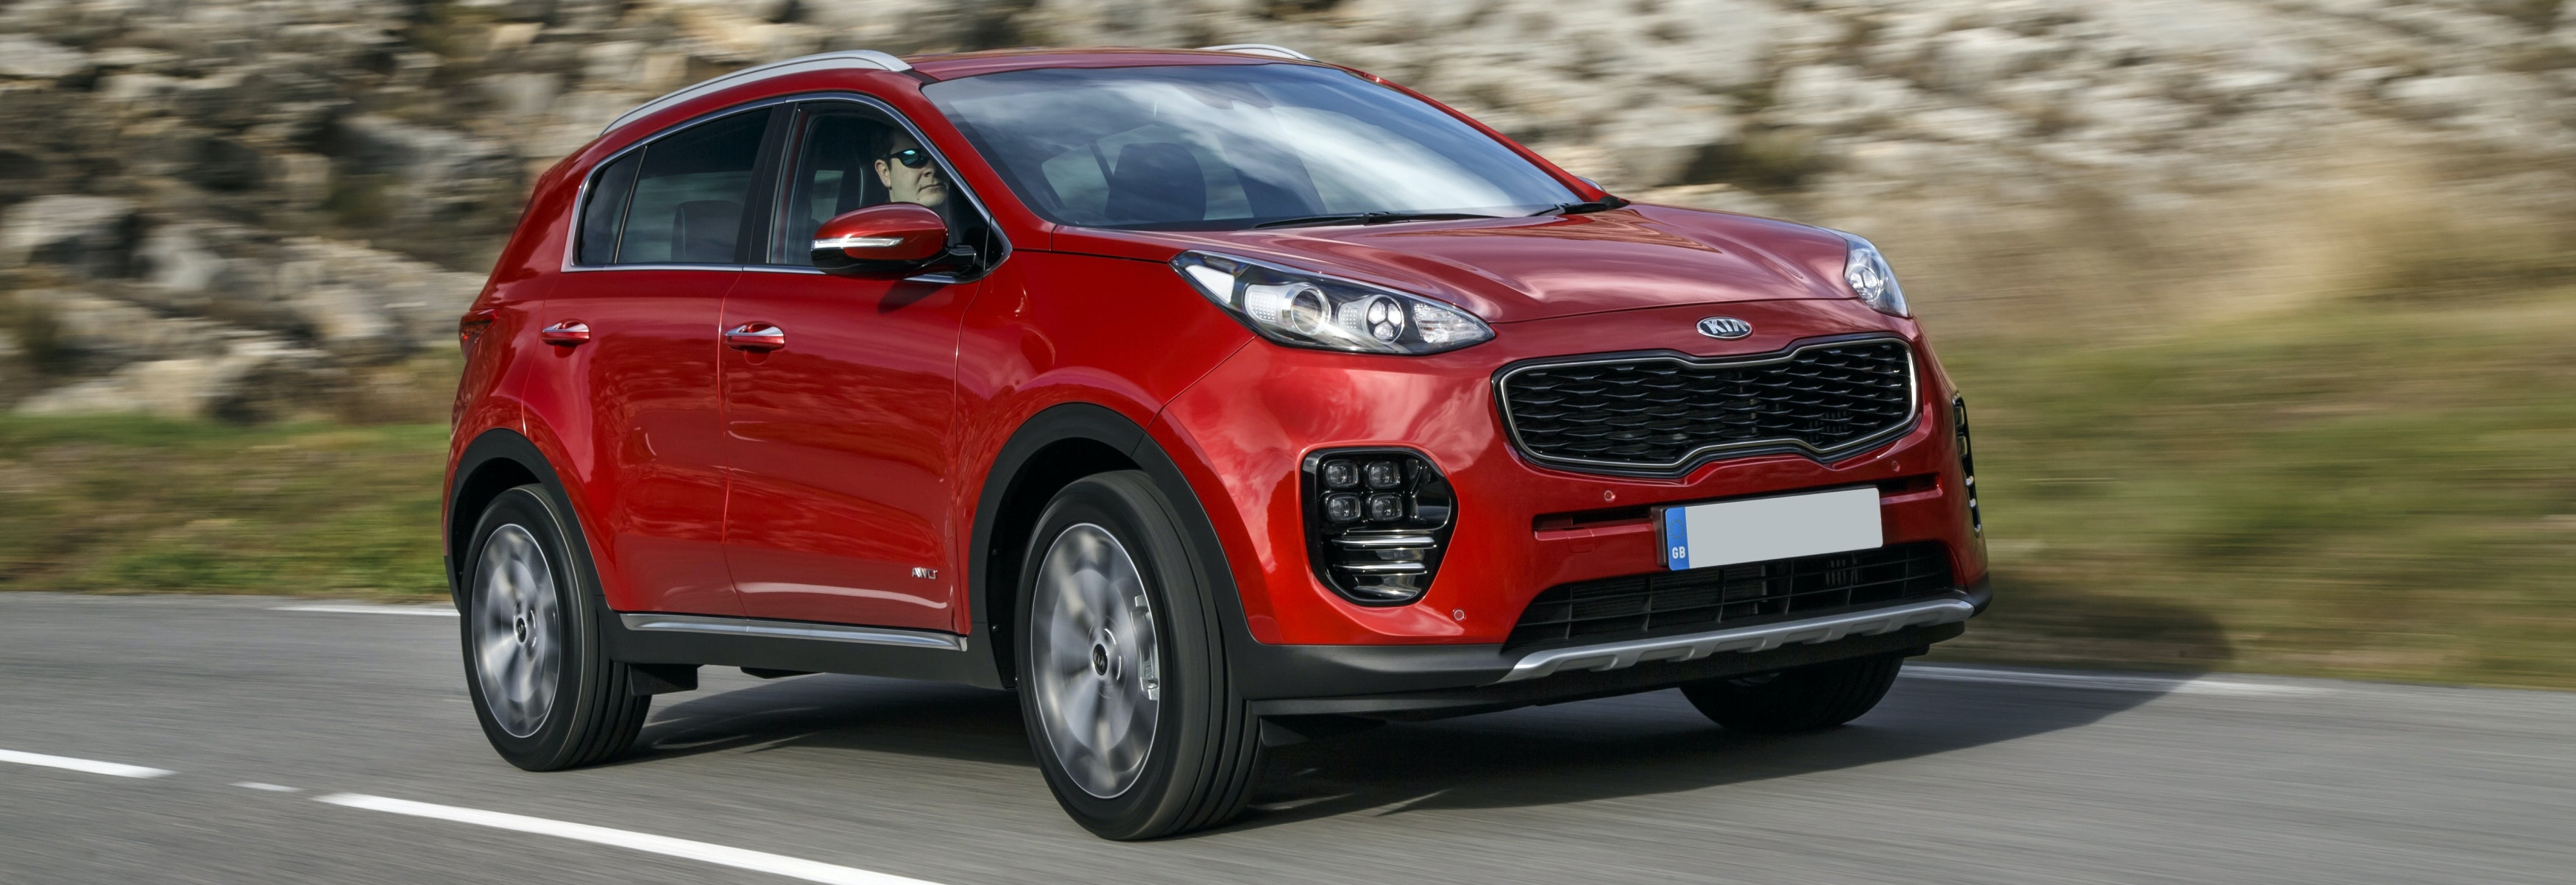 2018 Kia Sportage Red Driving Front